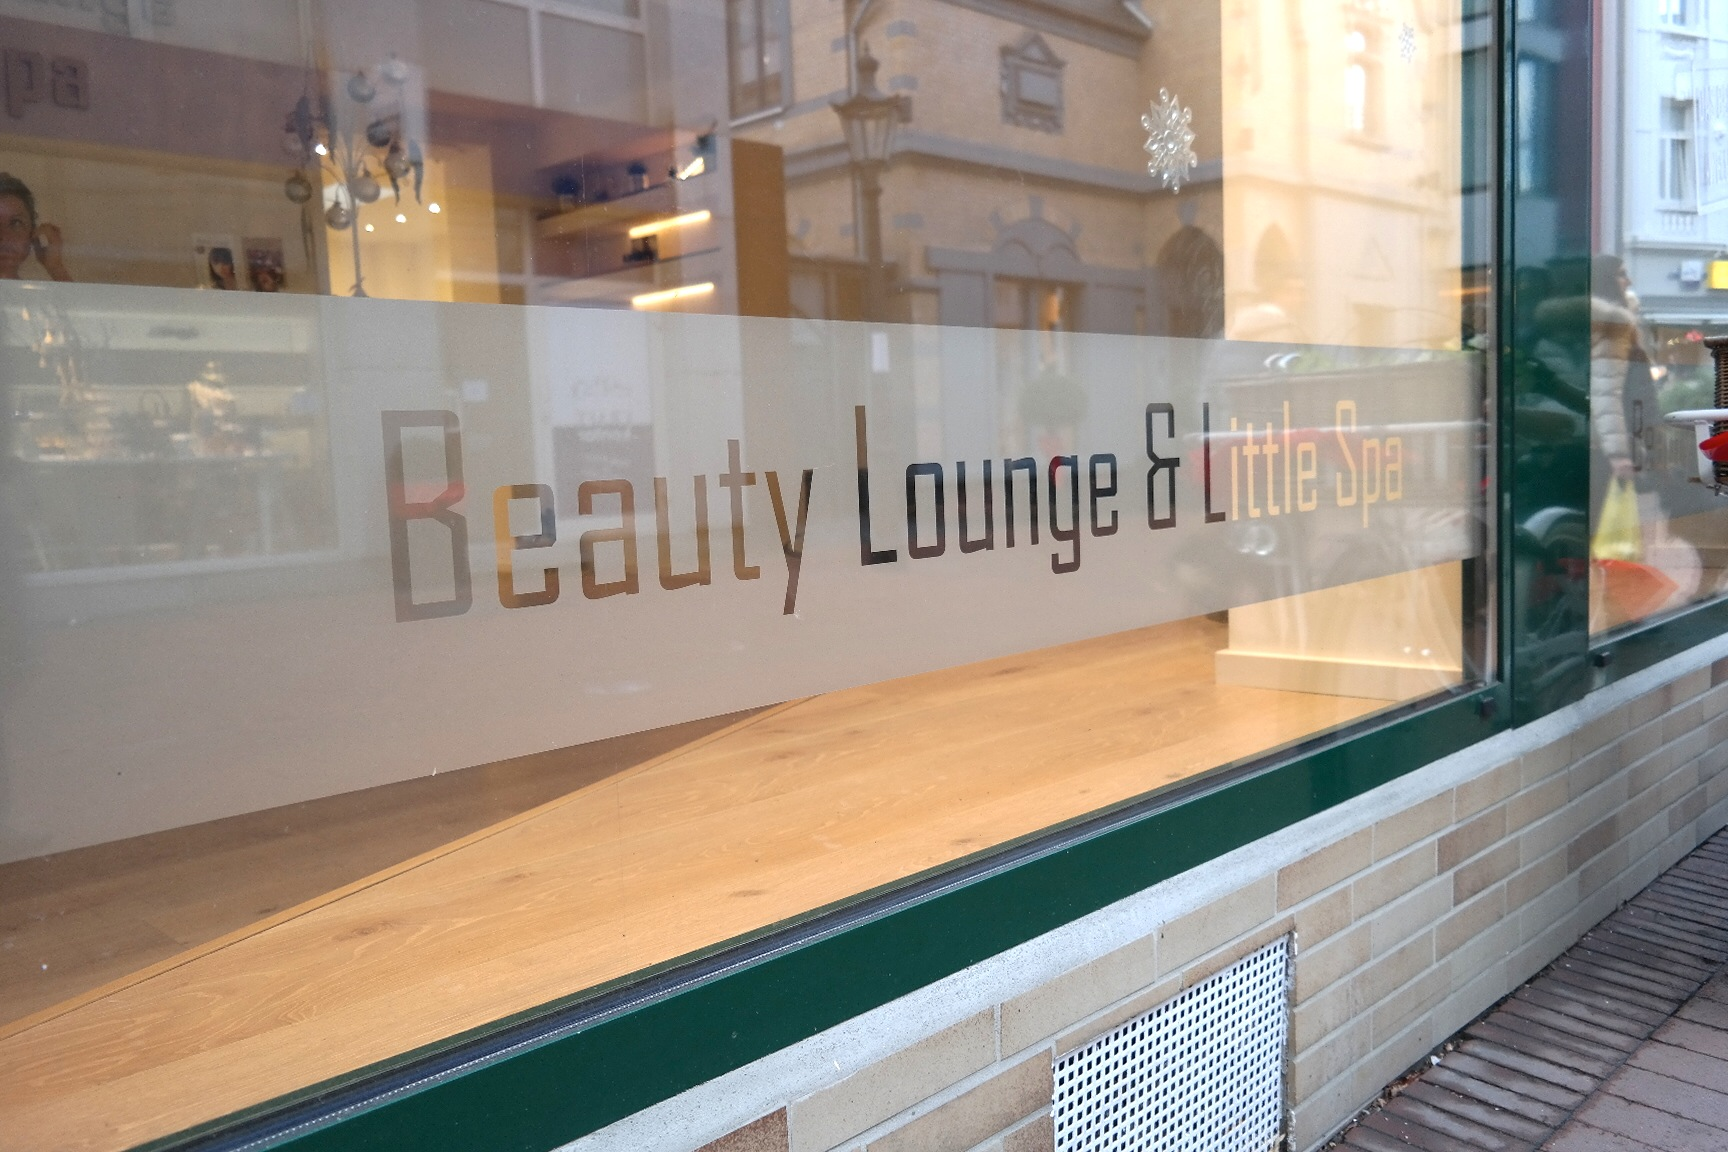 Maritim Bonn Bad Godesberg Wellness : Beauty Lounge & Little Spa Bonn Bad Godesberg Lifestyle Blog Kosmetik